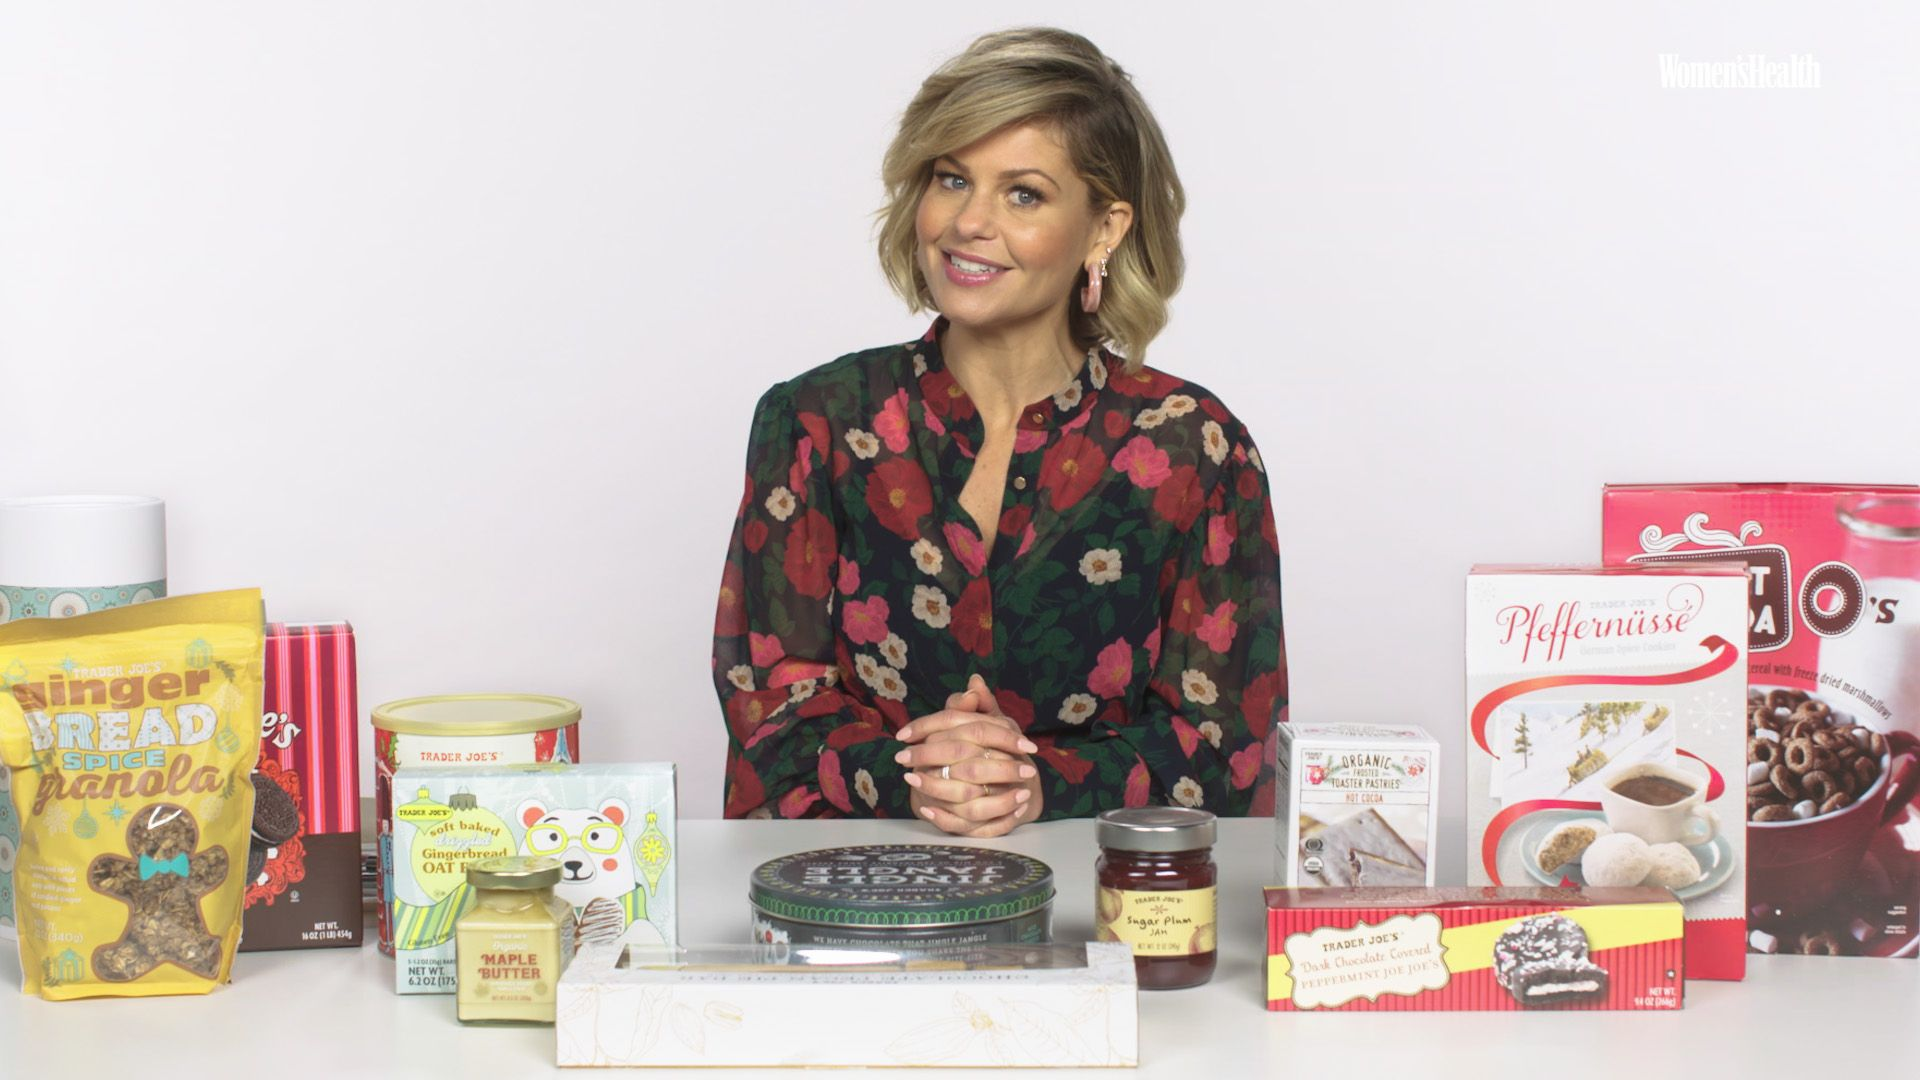 Candace Cameron Bure Is Here For Holiday Treats, But Shes Reading The Nutrition Facts